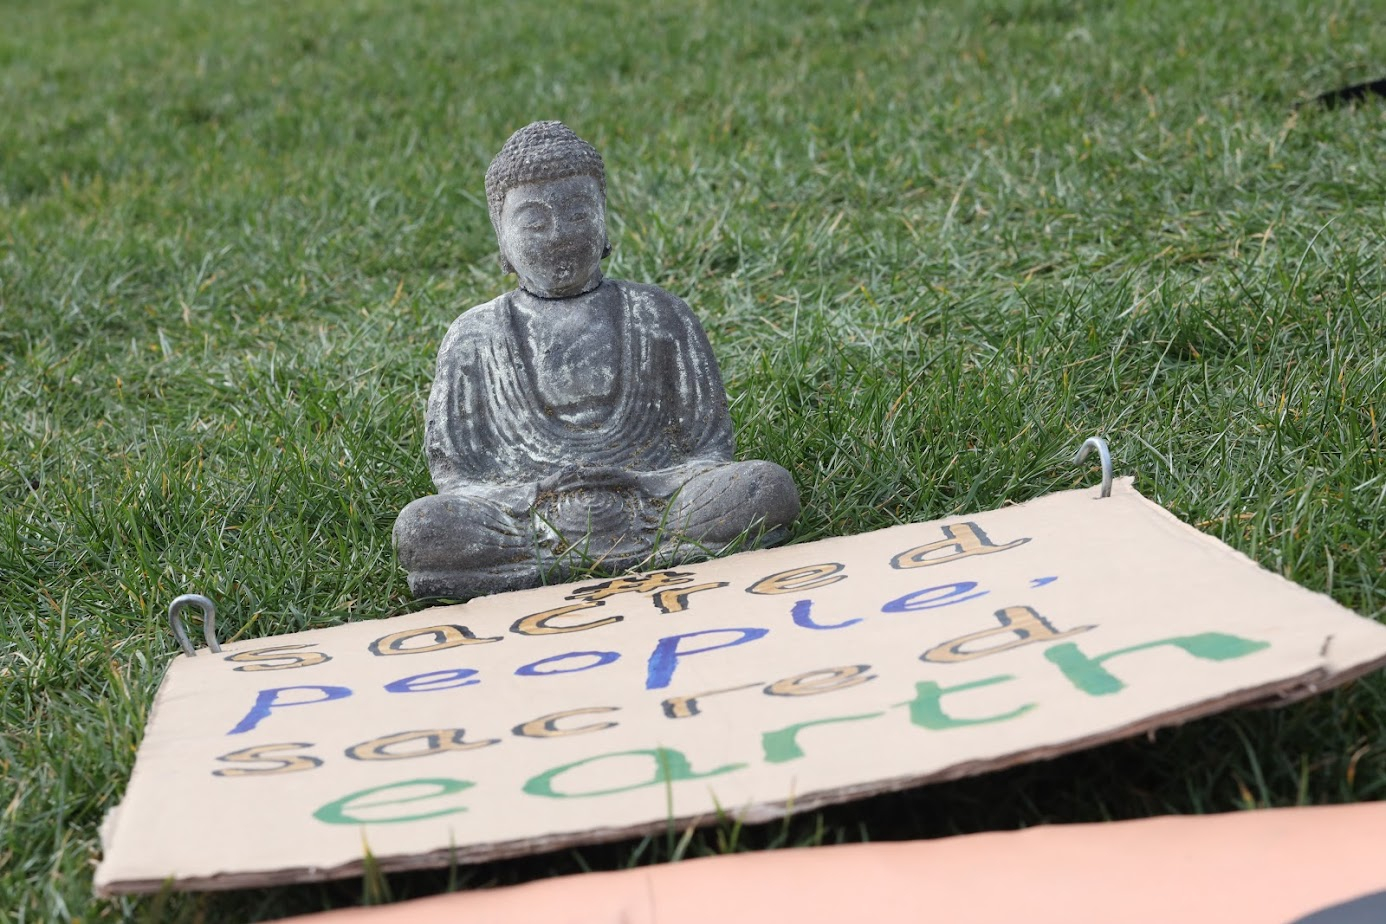 A small Buddha statue and a handmade sign which reads 'sacred people, sacred earth'.